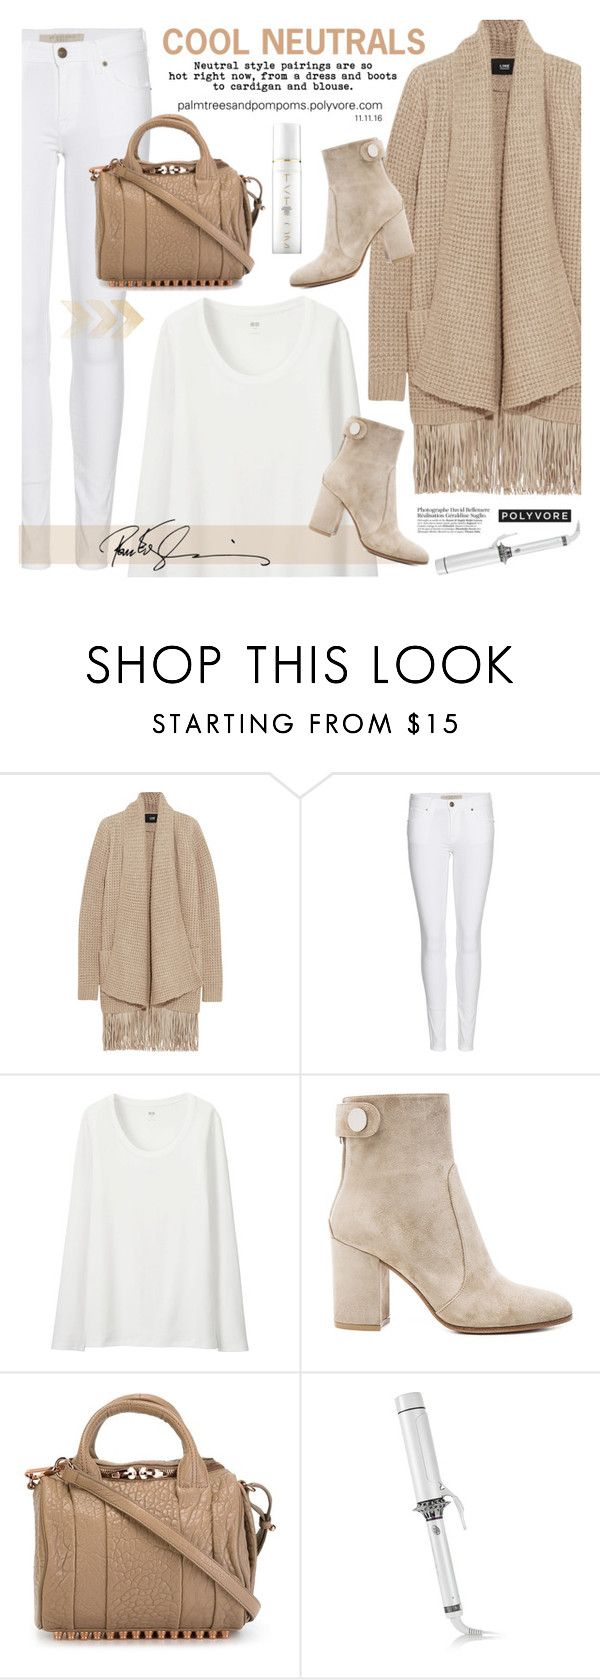 """""""Cool Neutrals / Alexander Wang Rockie Handbag"""" by palmtreesandpompoms ❤ liked on Polyvore featuring Line, Burberry, Uniqlo, Gianvito Rossi, Alexander Wang, T3, Eve Lom, AlexanderWang, neutrals and tessabit"""